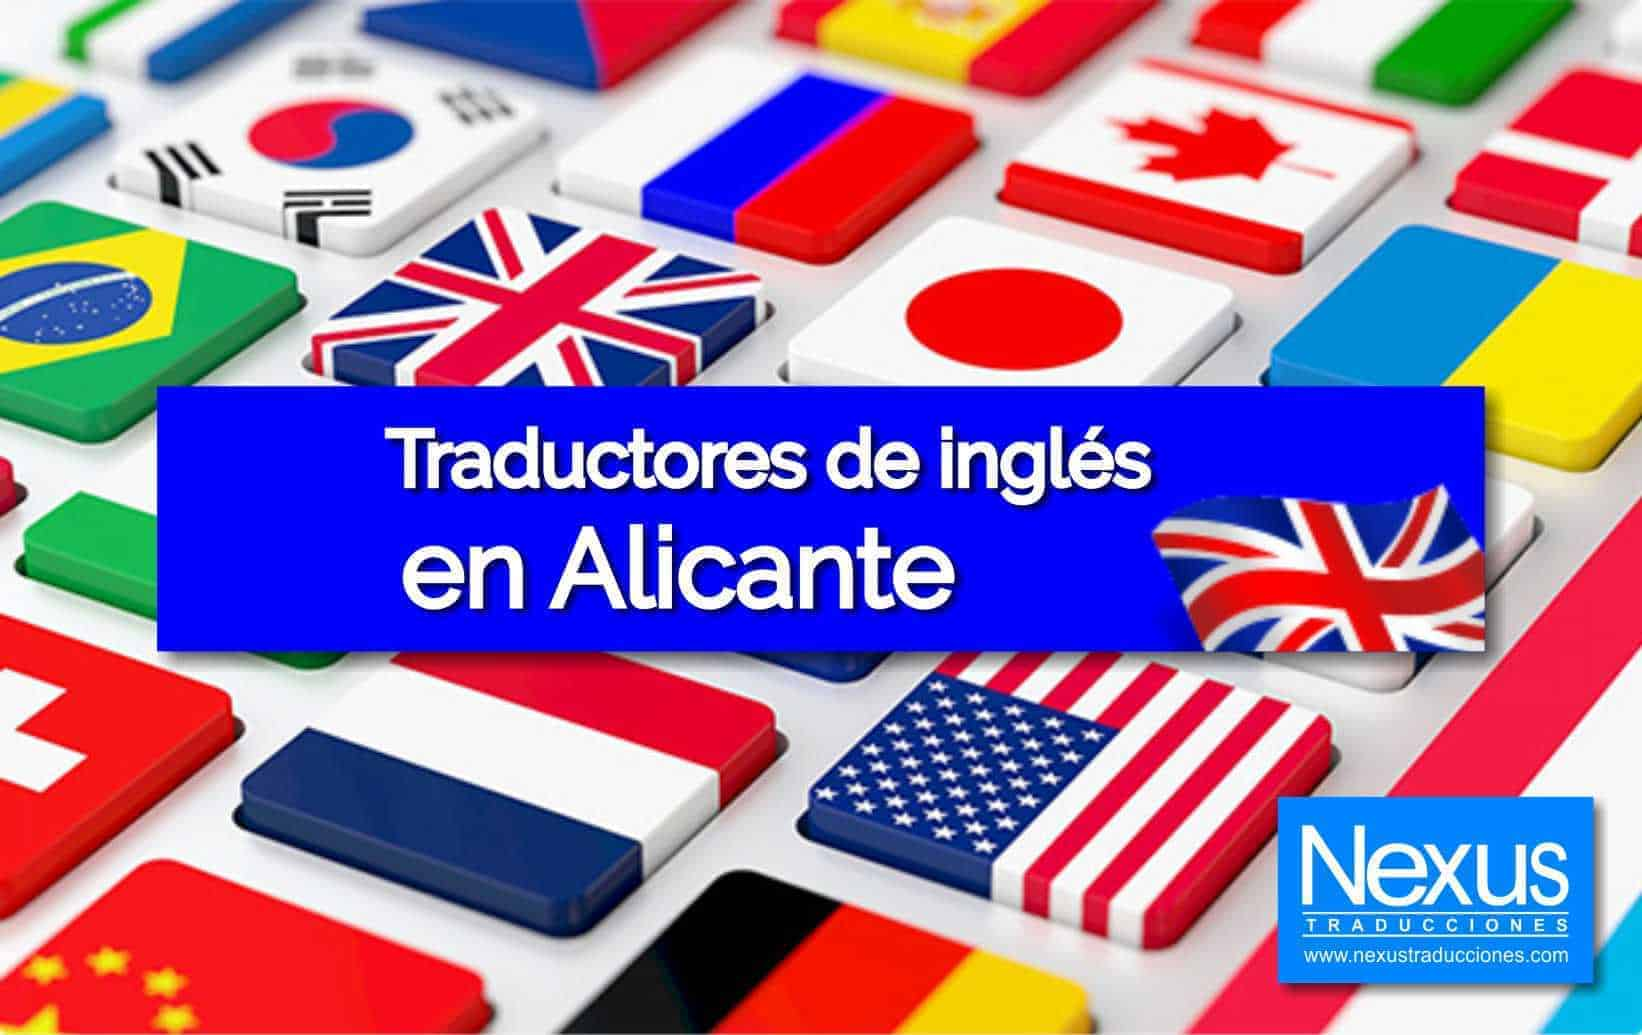 English translation in Alicante